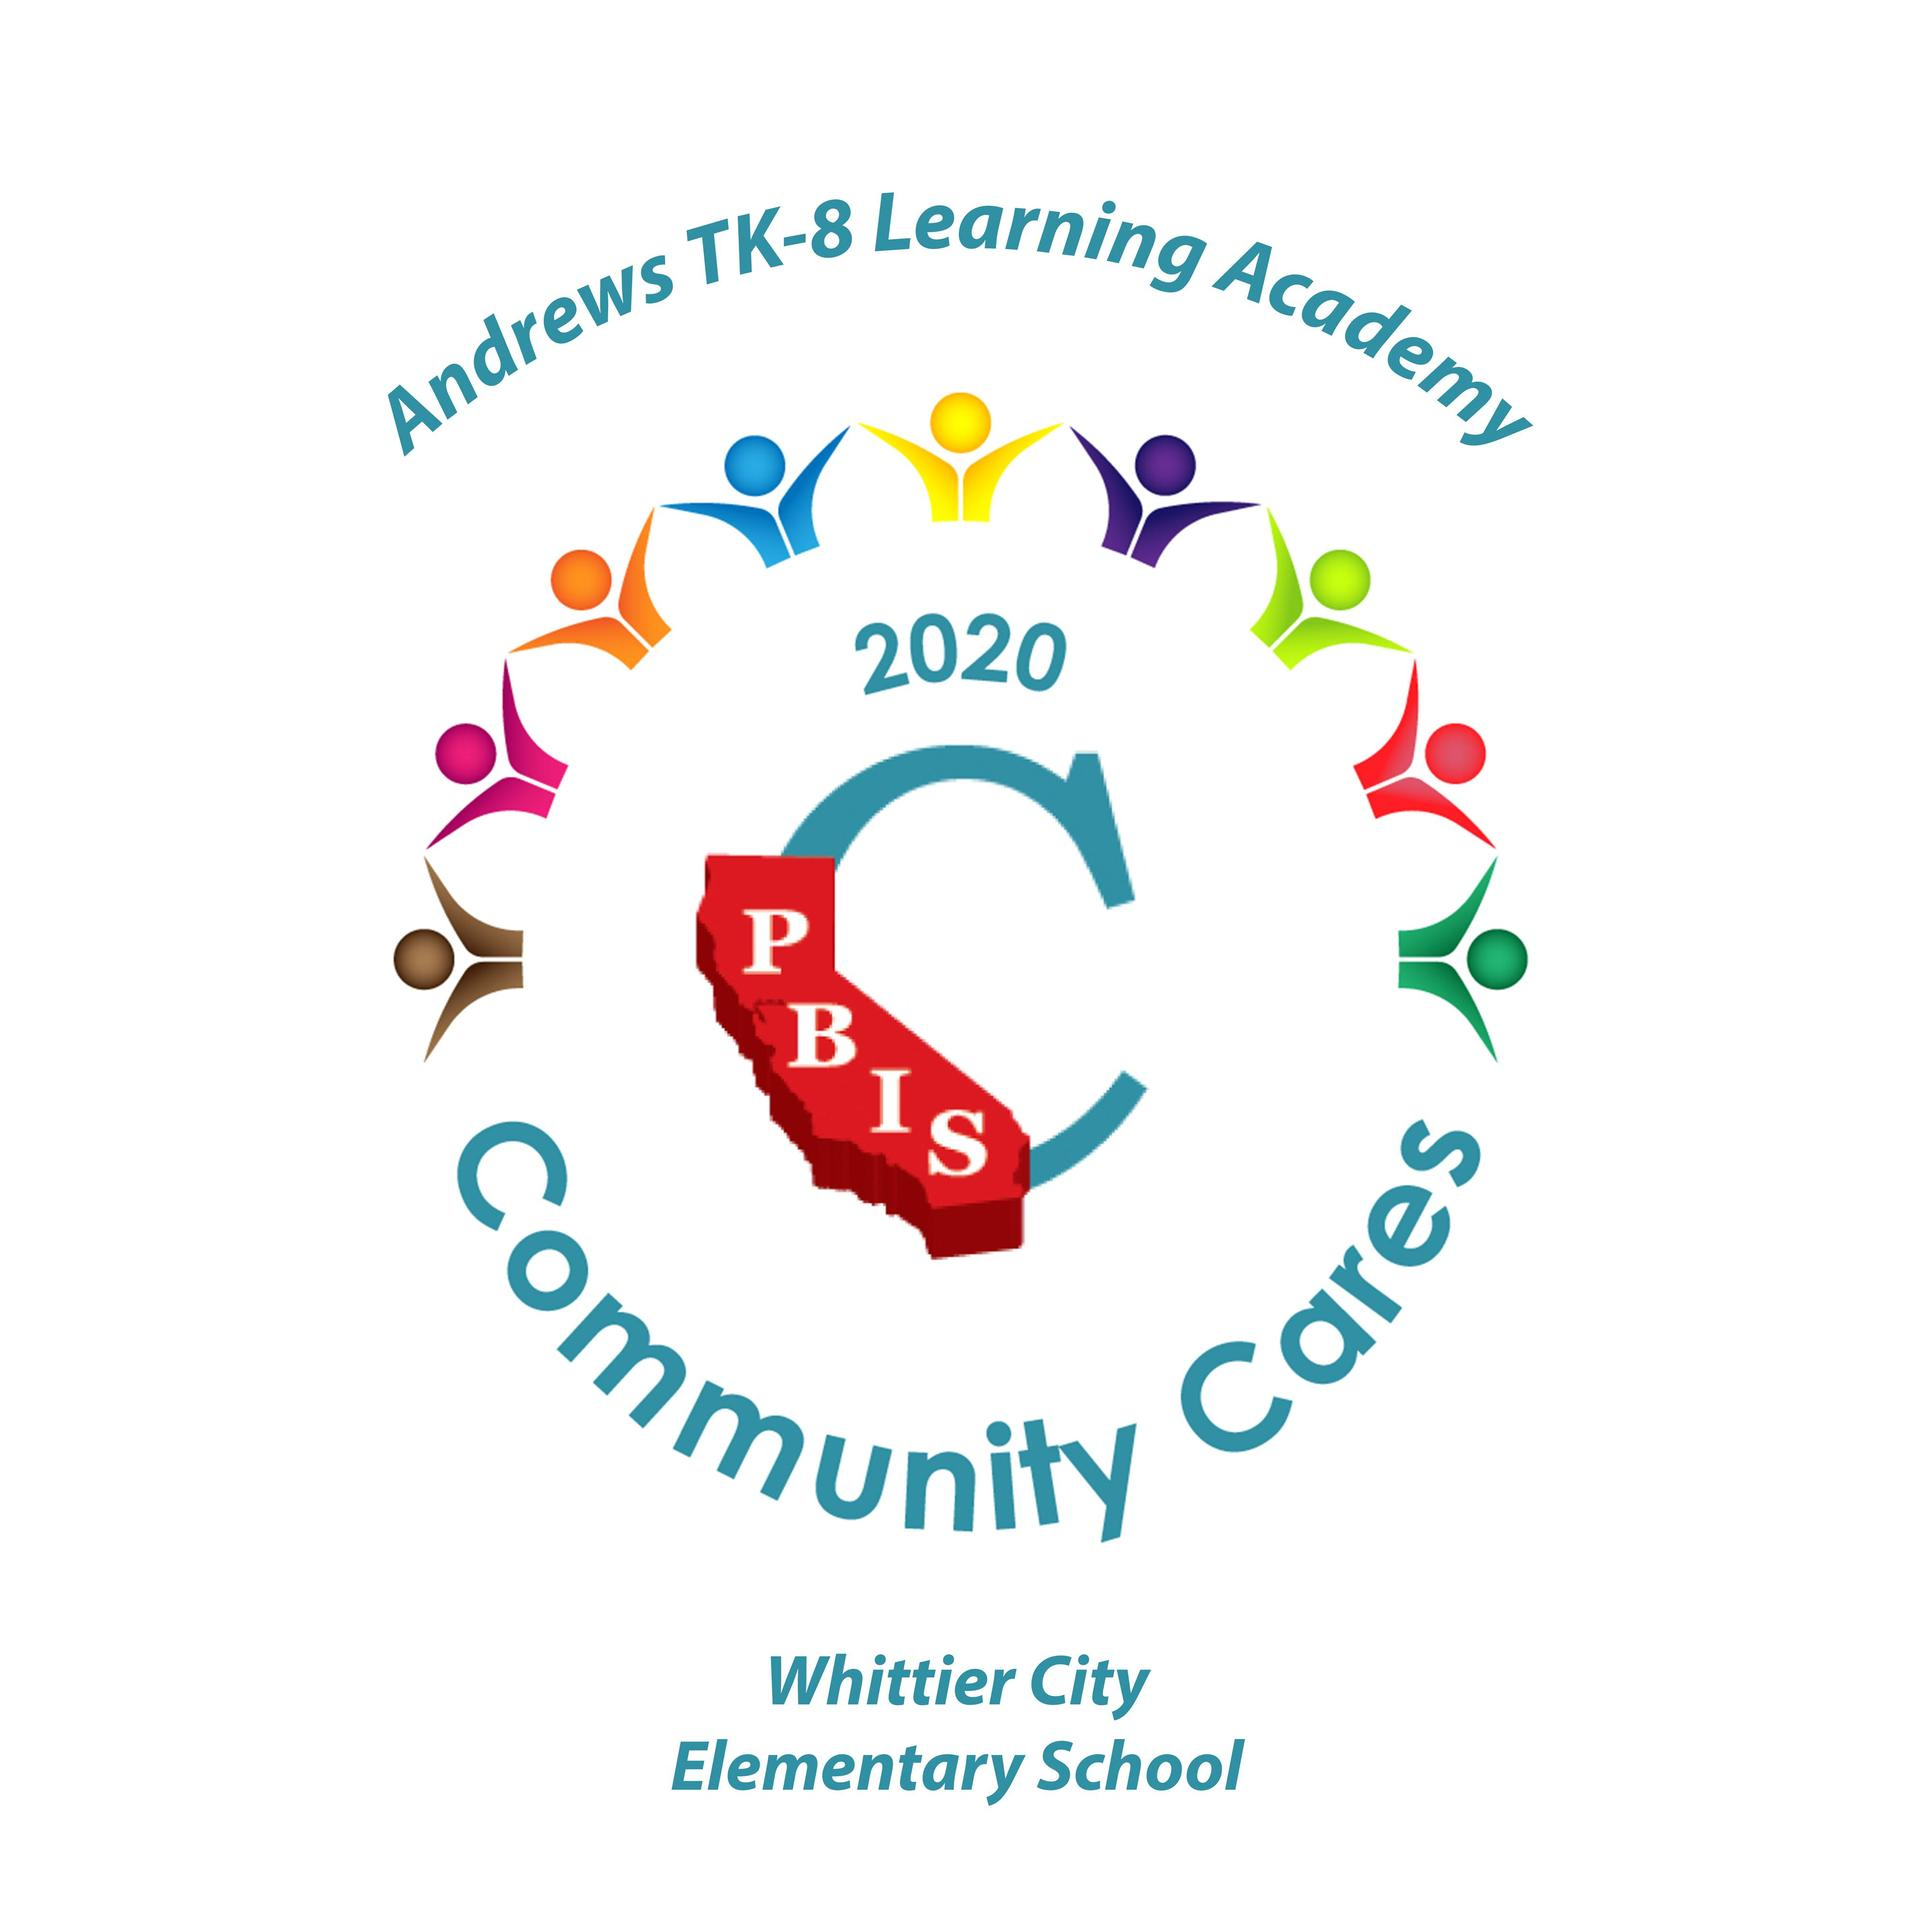 Andrews Tk-8 Learning Academy